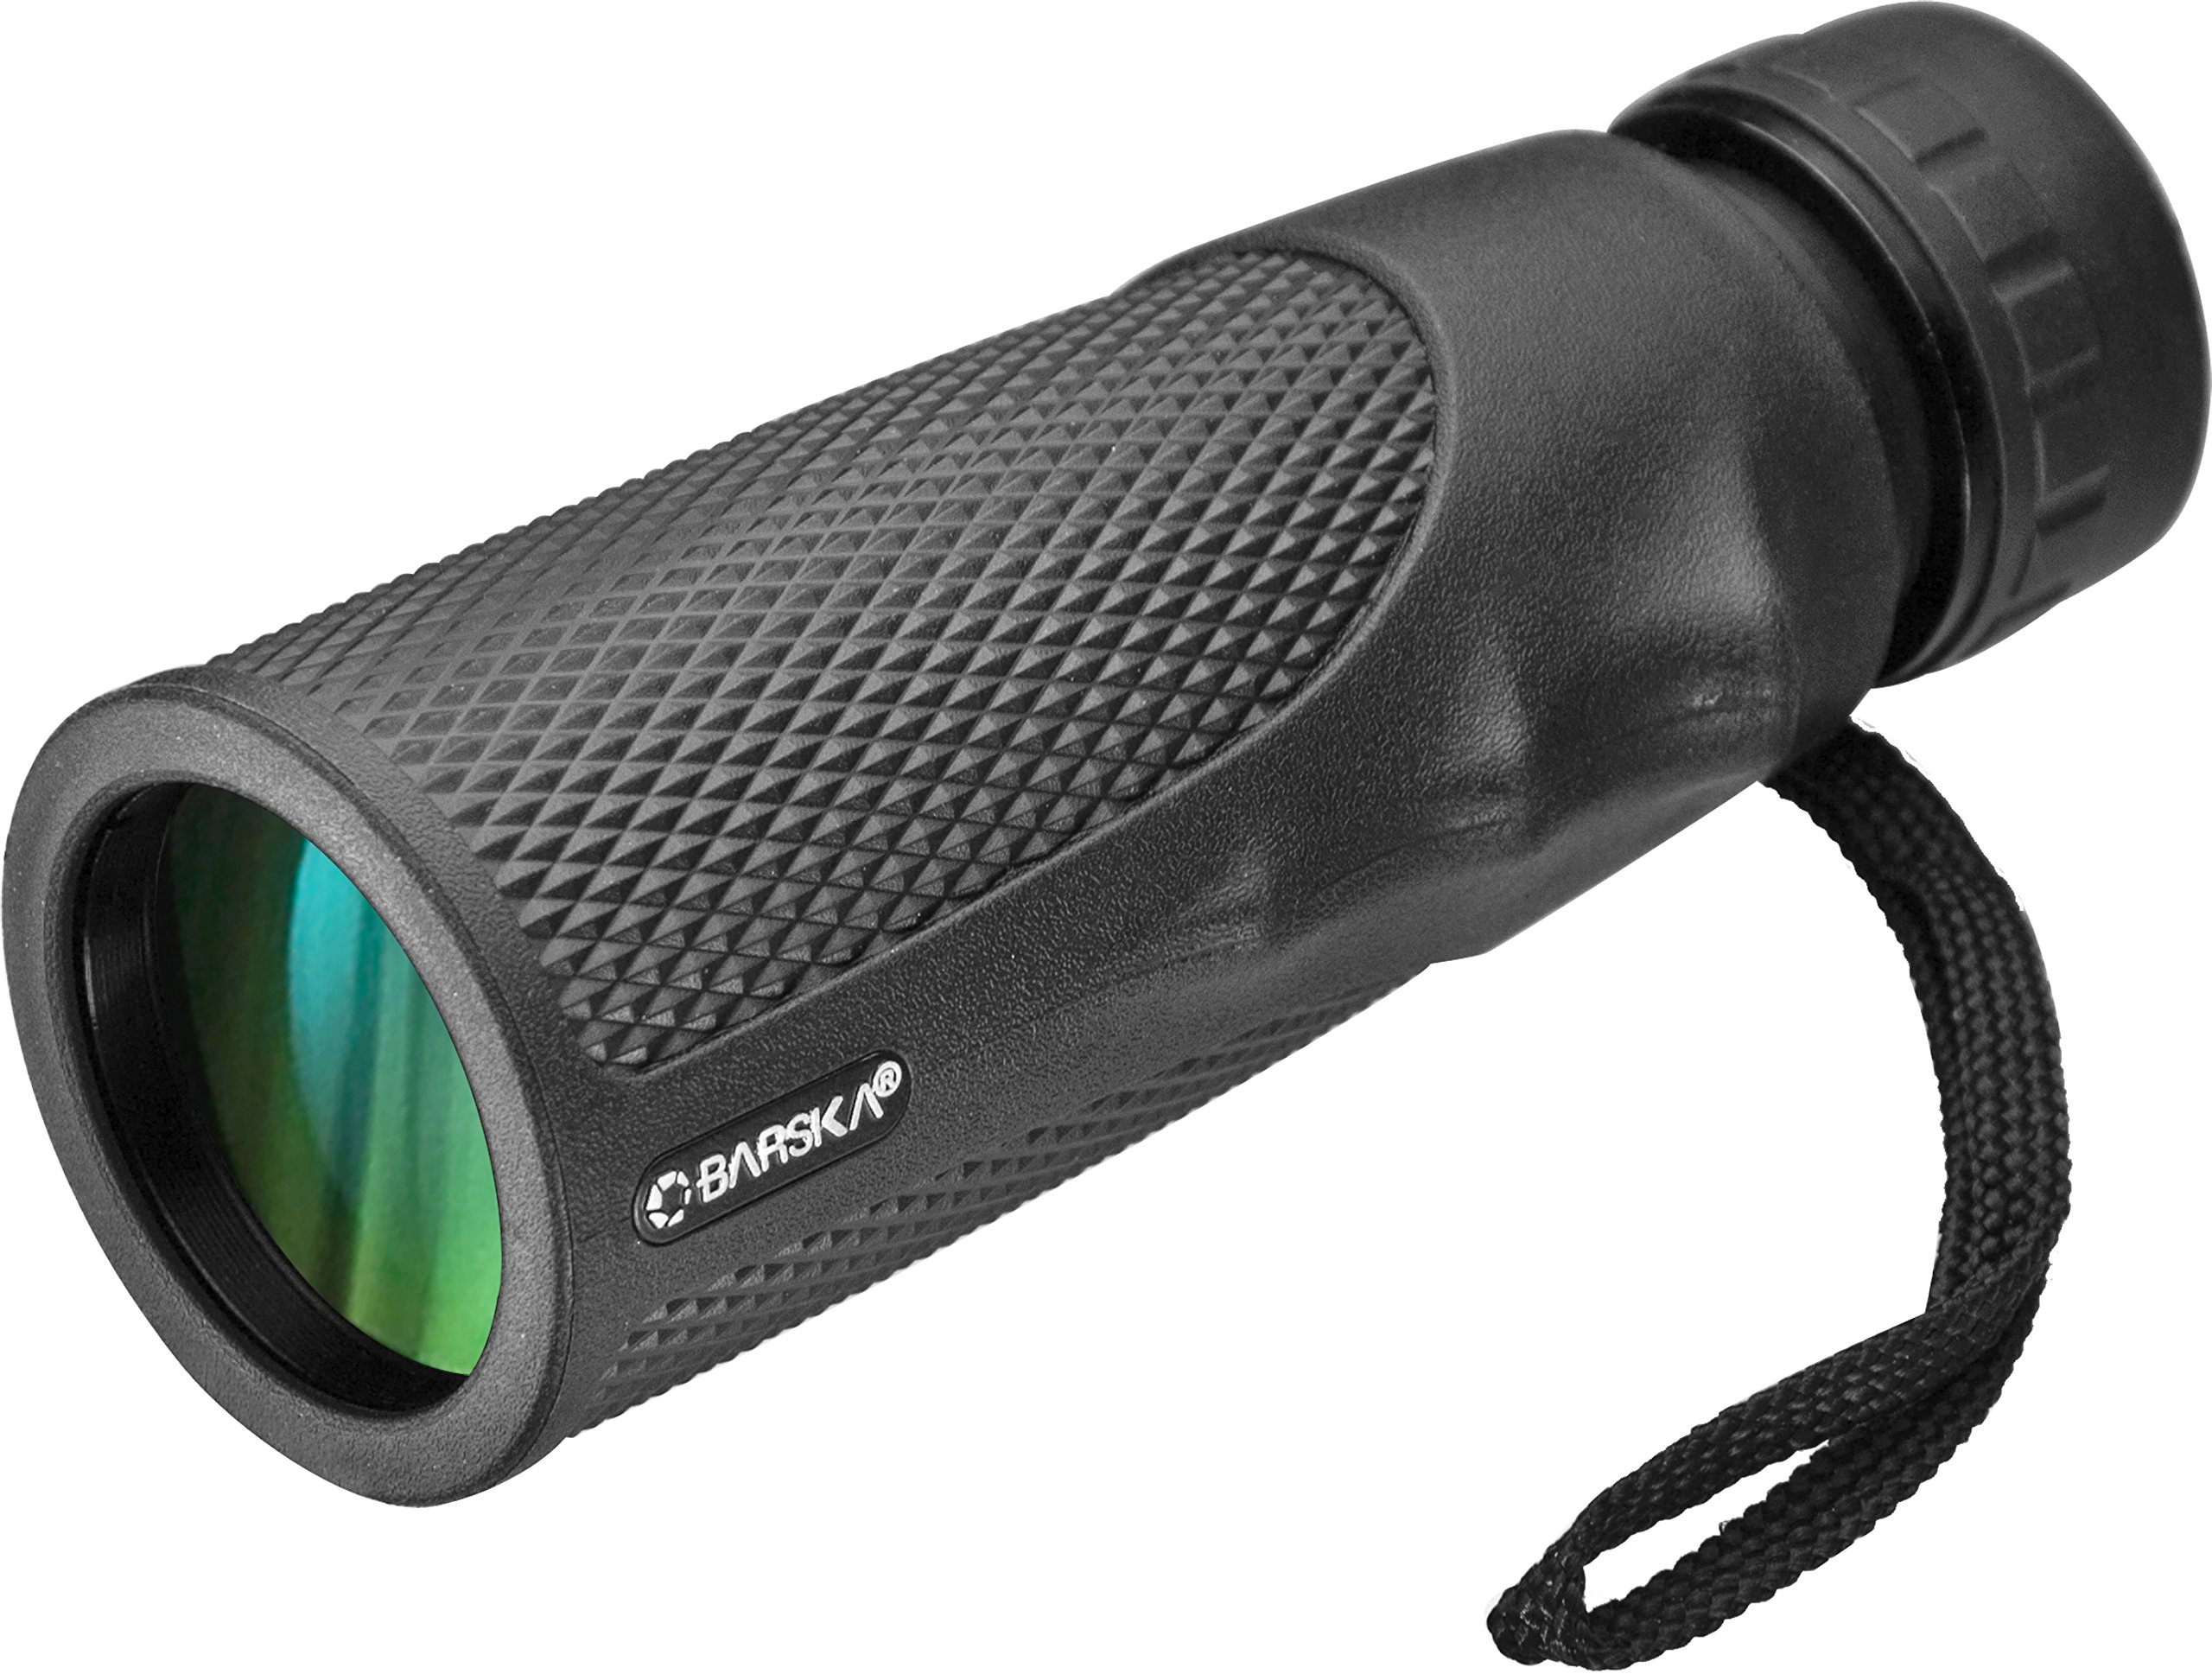 Barska 10x40 Blackhawk Waterproof Monocular by BARSKA